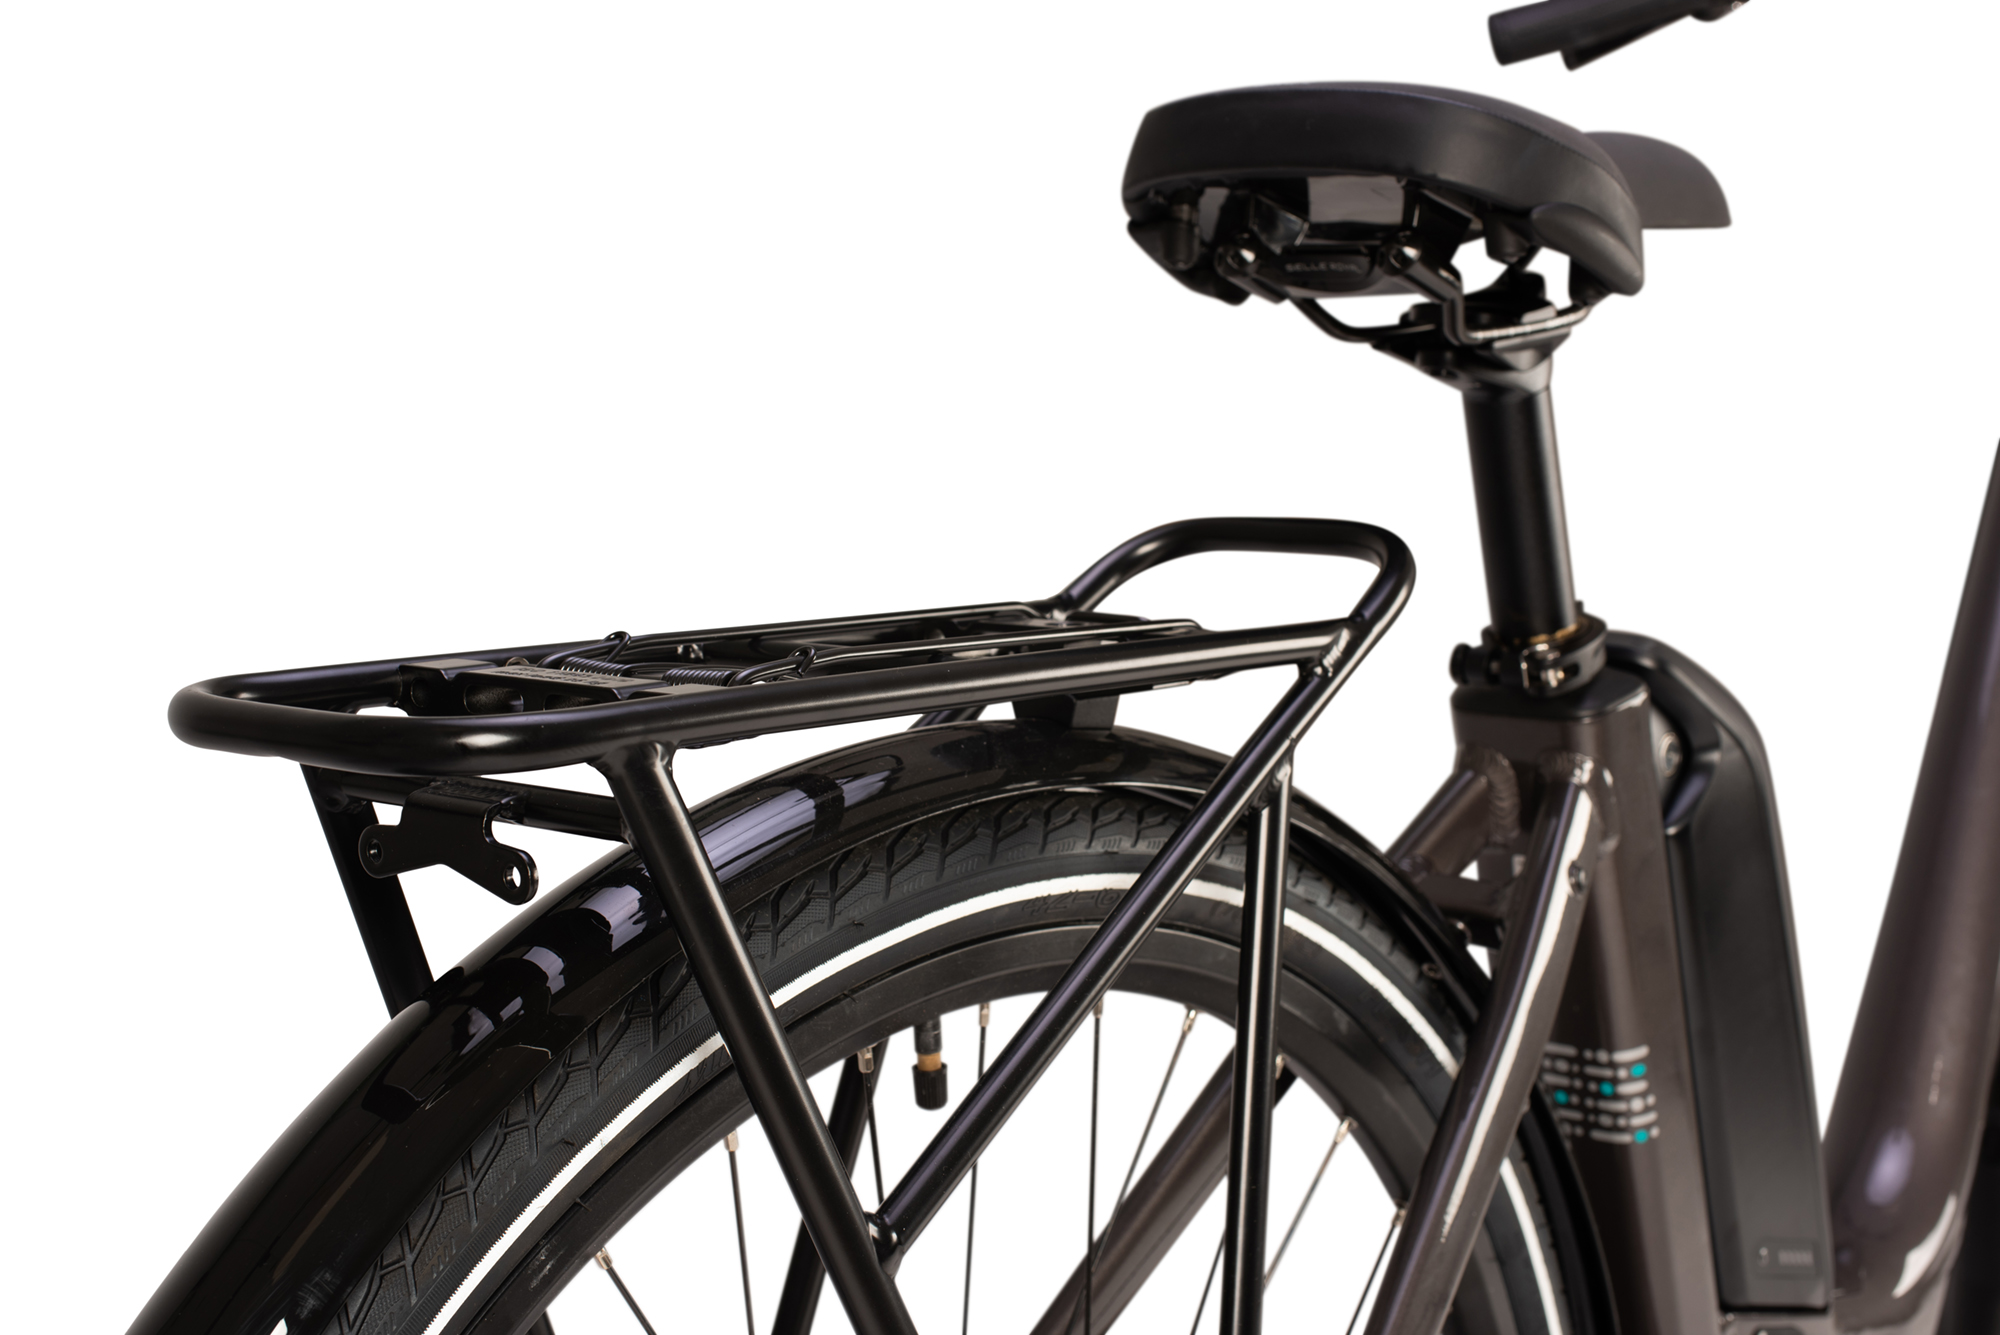 Rack on the Raleigh Motus Low Step electric bike in grey colour